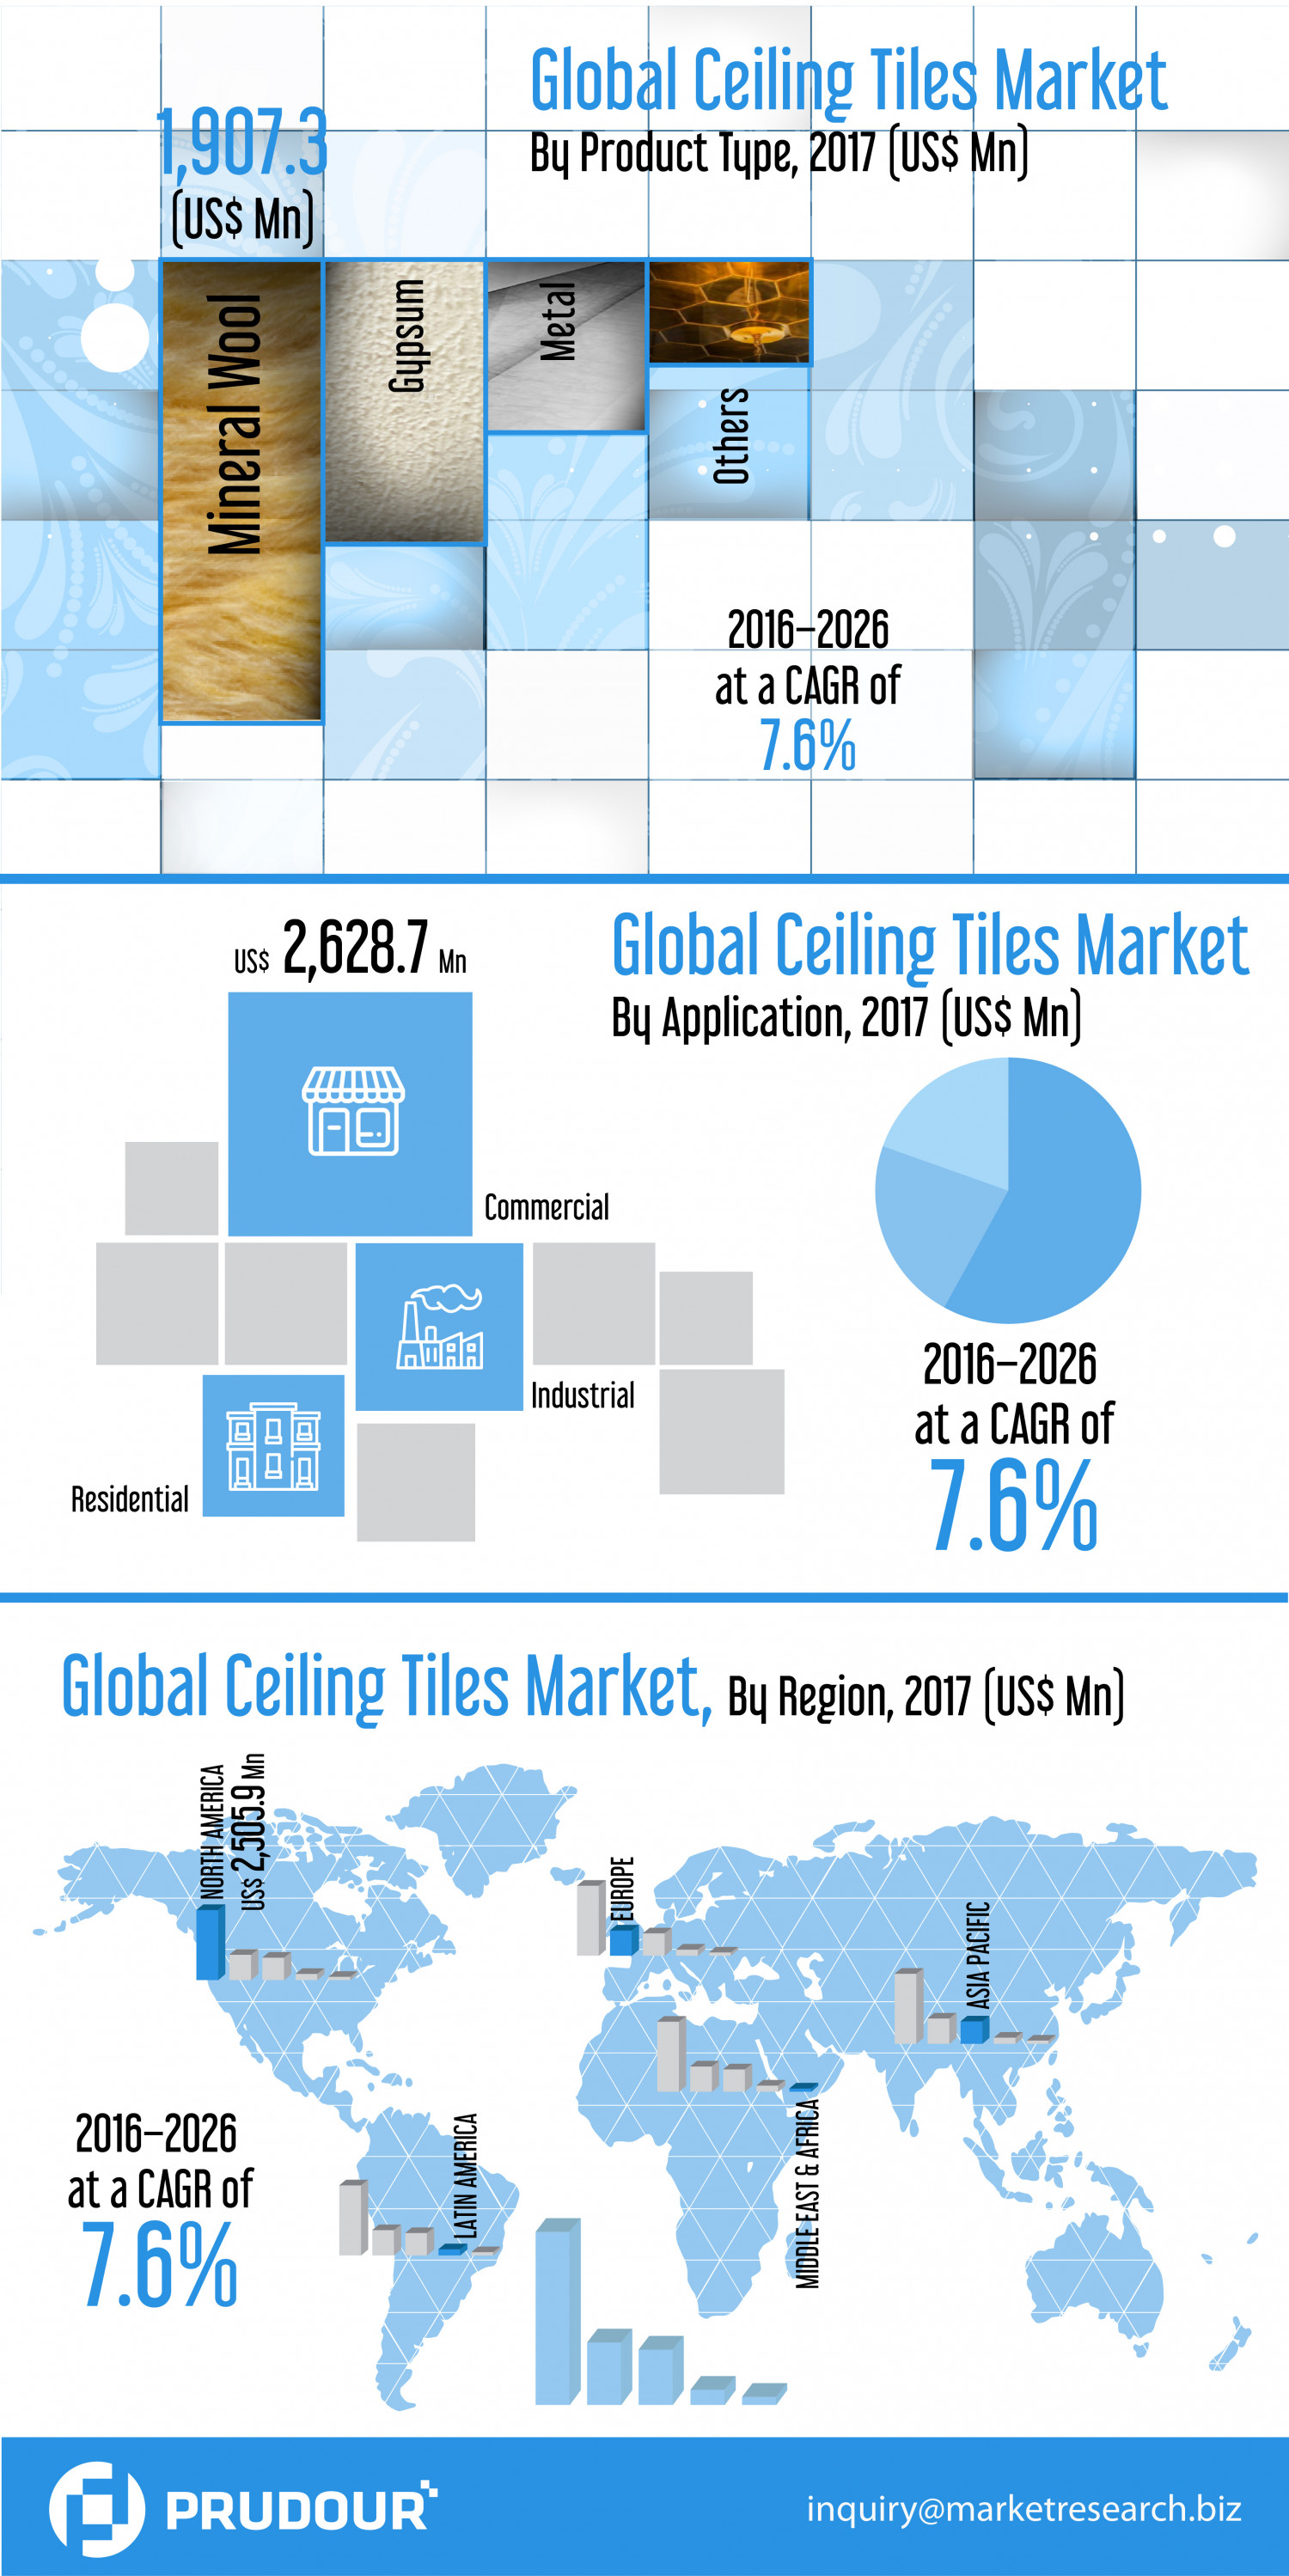 Ceiling Tiles Market - What Factors will drive the Market in Upcoming Years? Infographic